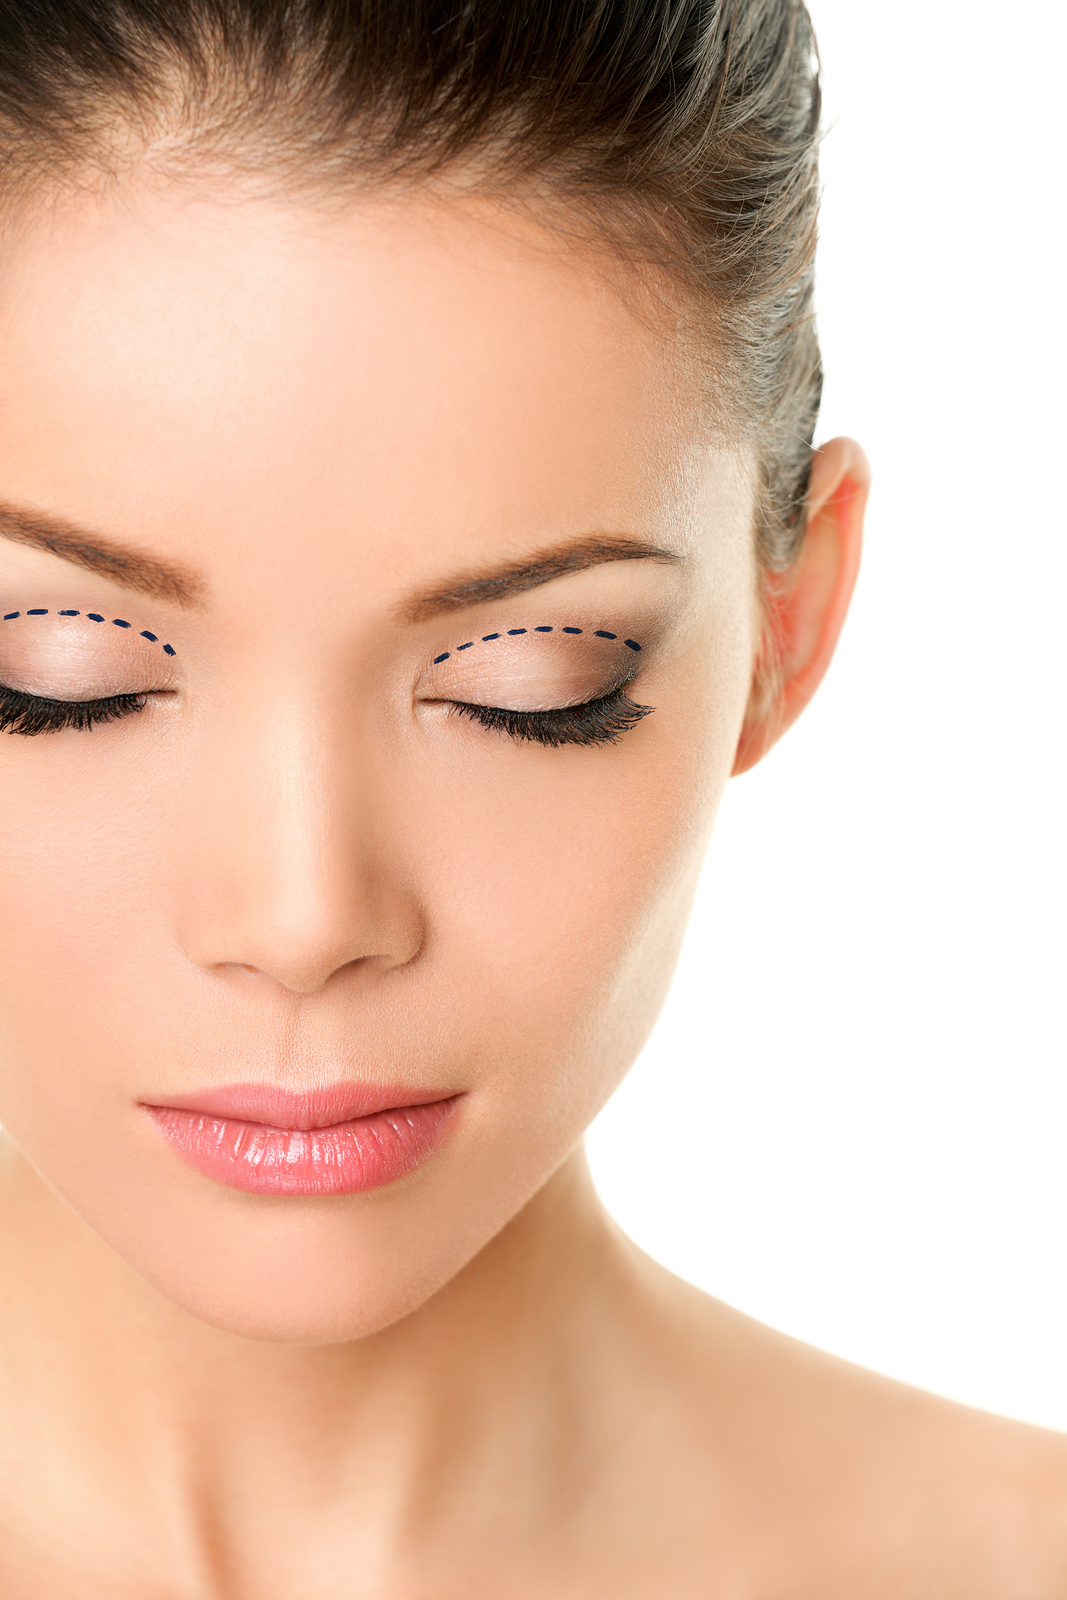 Blepharoplasty Redlands